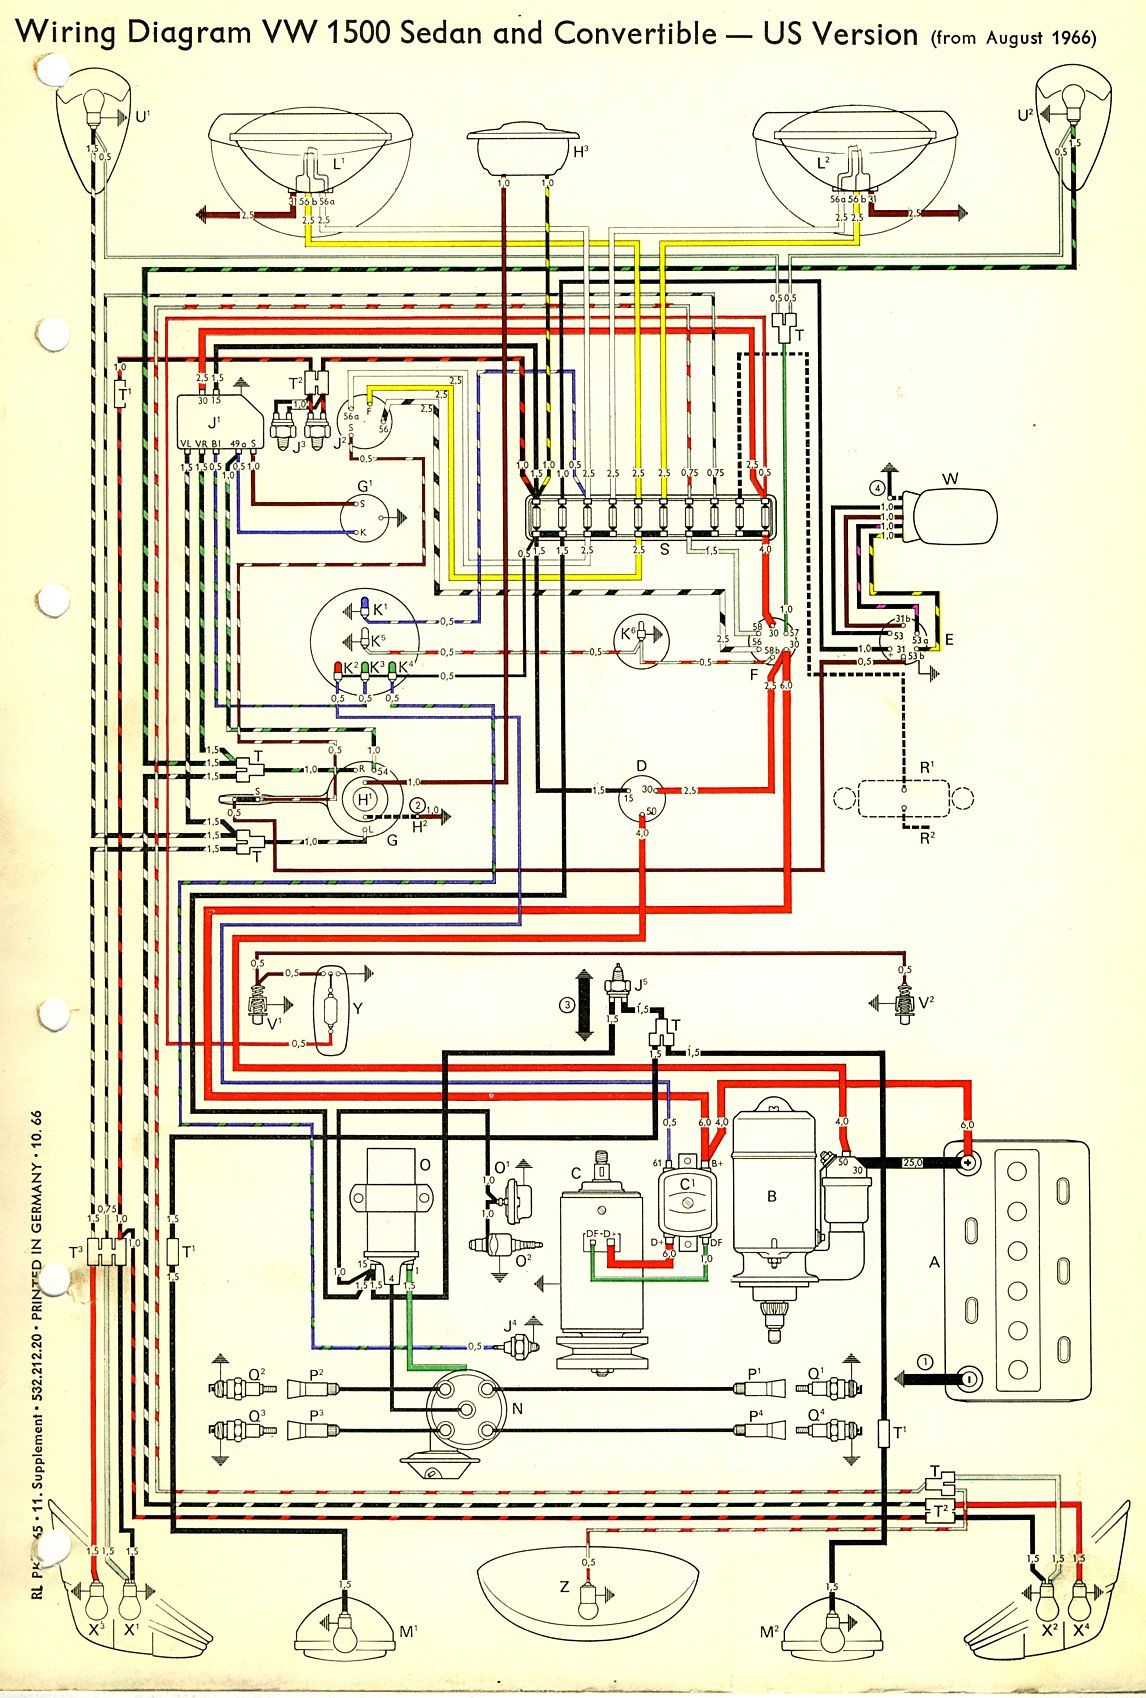 1adf990c0efb617c789fdd21338448b0 1967 beetle wiring diagram (usa) thegoldenbug com best 1967 vw vw beetle 2002 radio wiring diagram at gsmportal.co